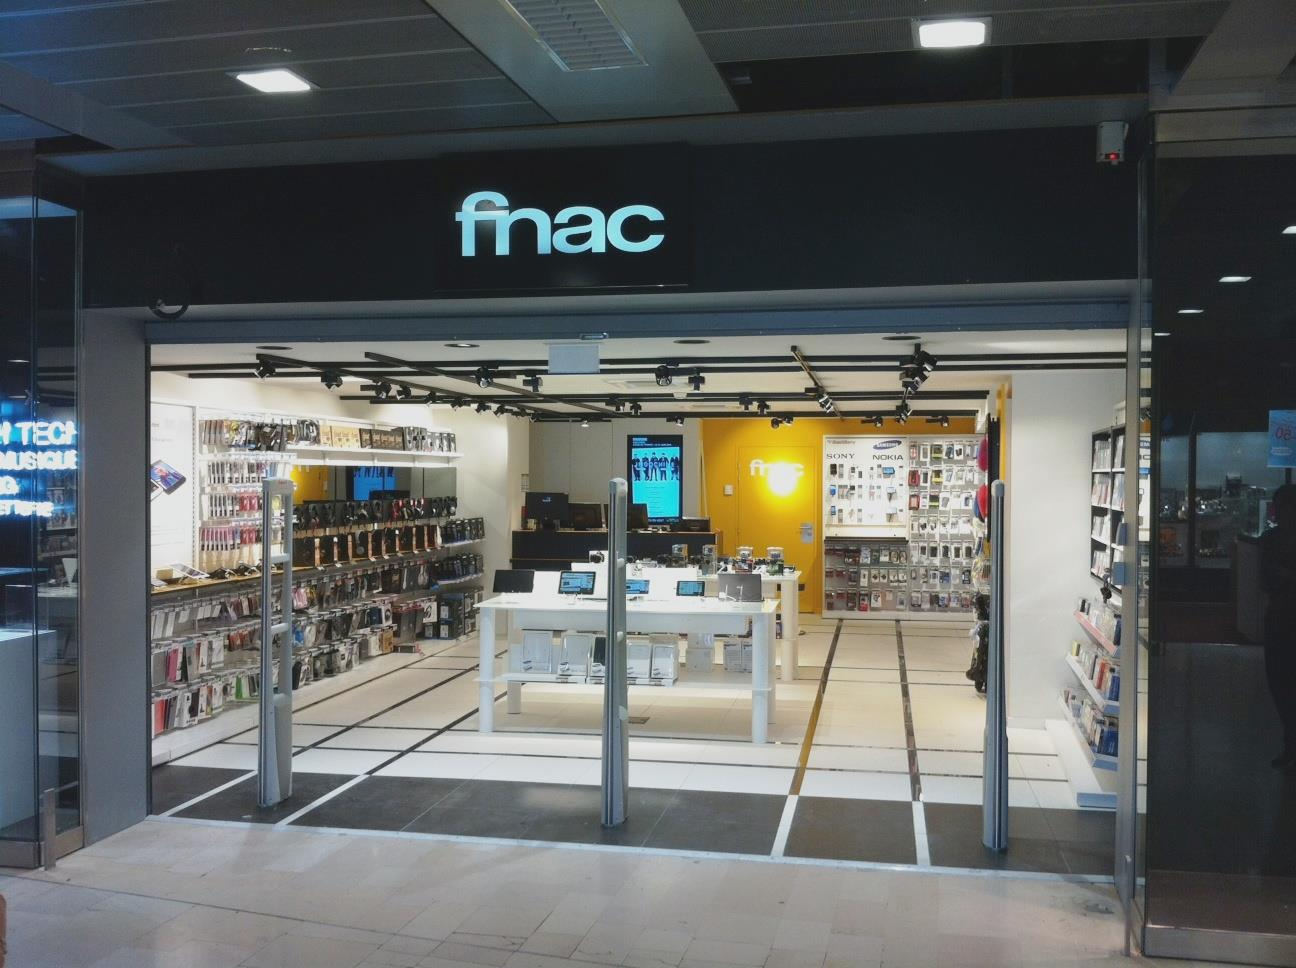 Magasin Bricolage Thonon Magasin Bricolage Thonon. Magasin Bricolage Thonon Magasin